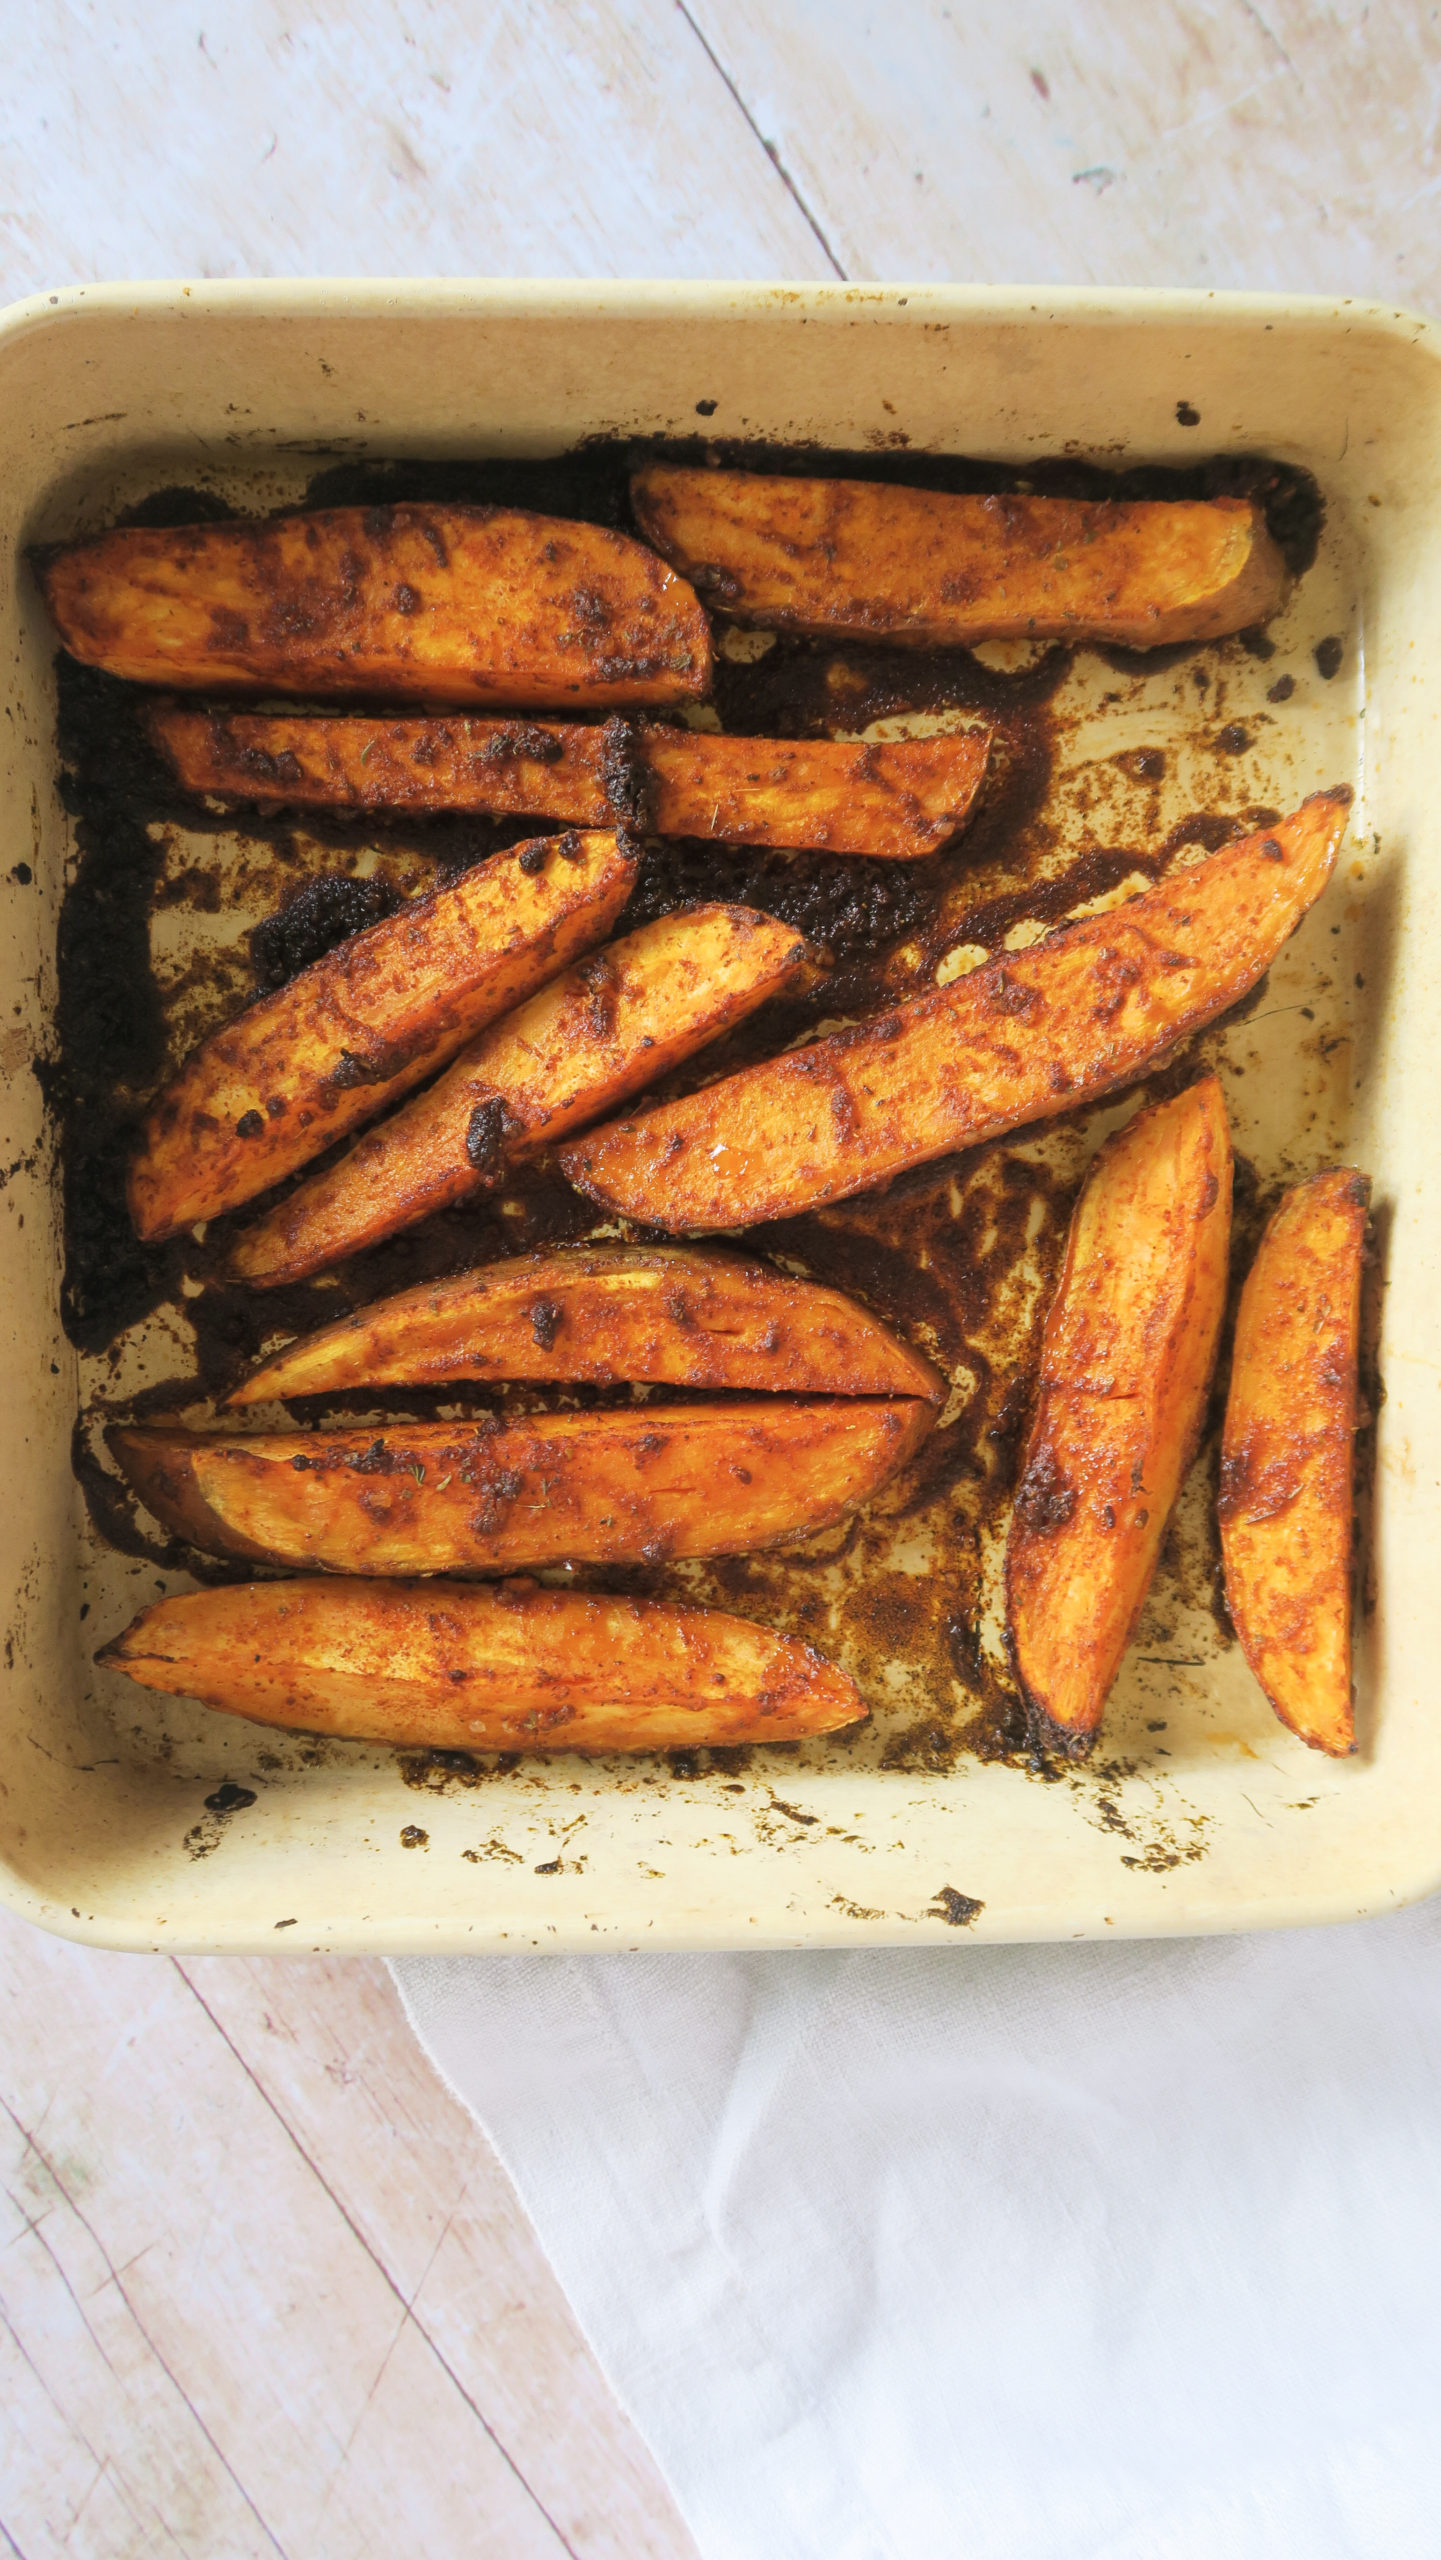 Sweet potato wedges roasted in a baking tray